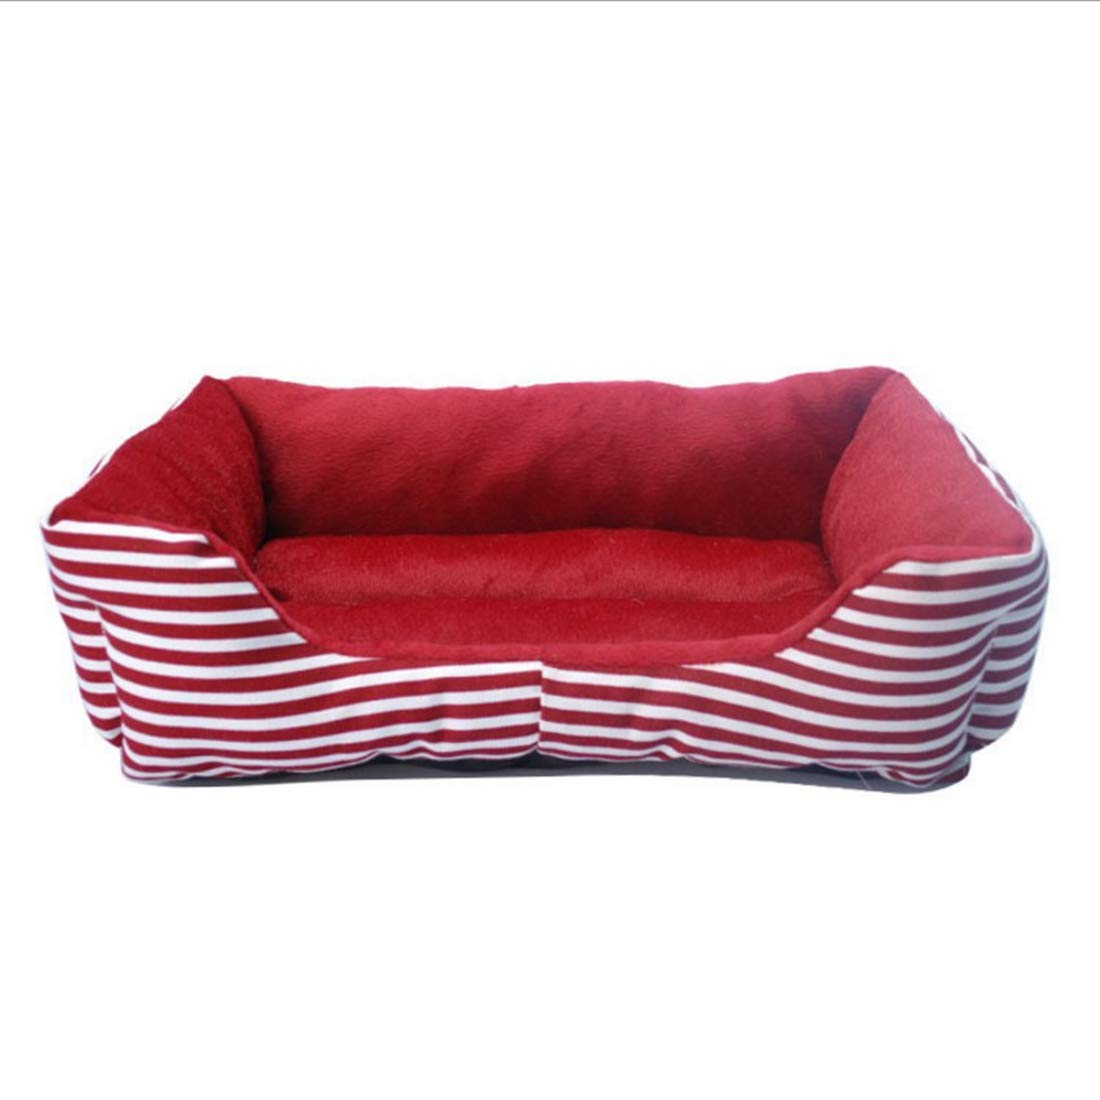 Red L Red L RABILTY Retro Square Pet Kennel Luxury Pet Sofa Cat Kennel Dog Bed (color   Red, Size   L)